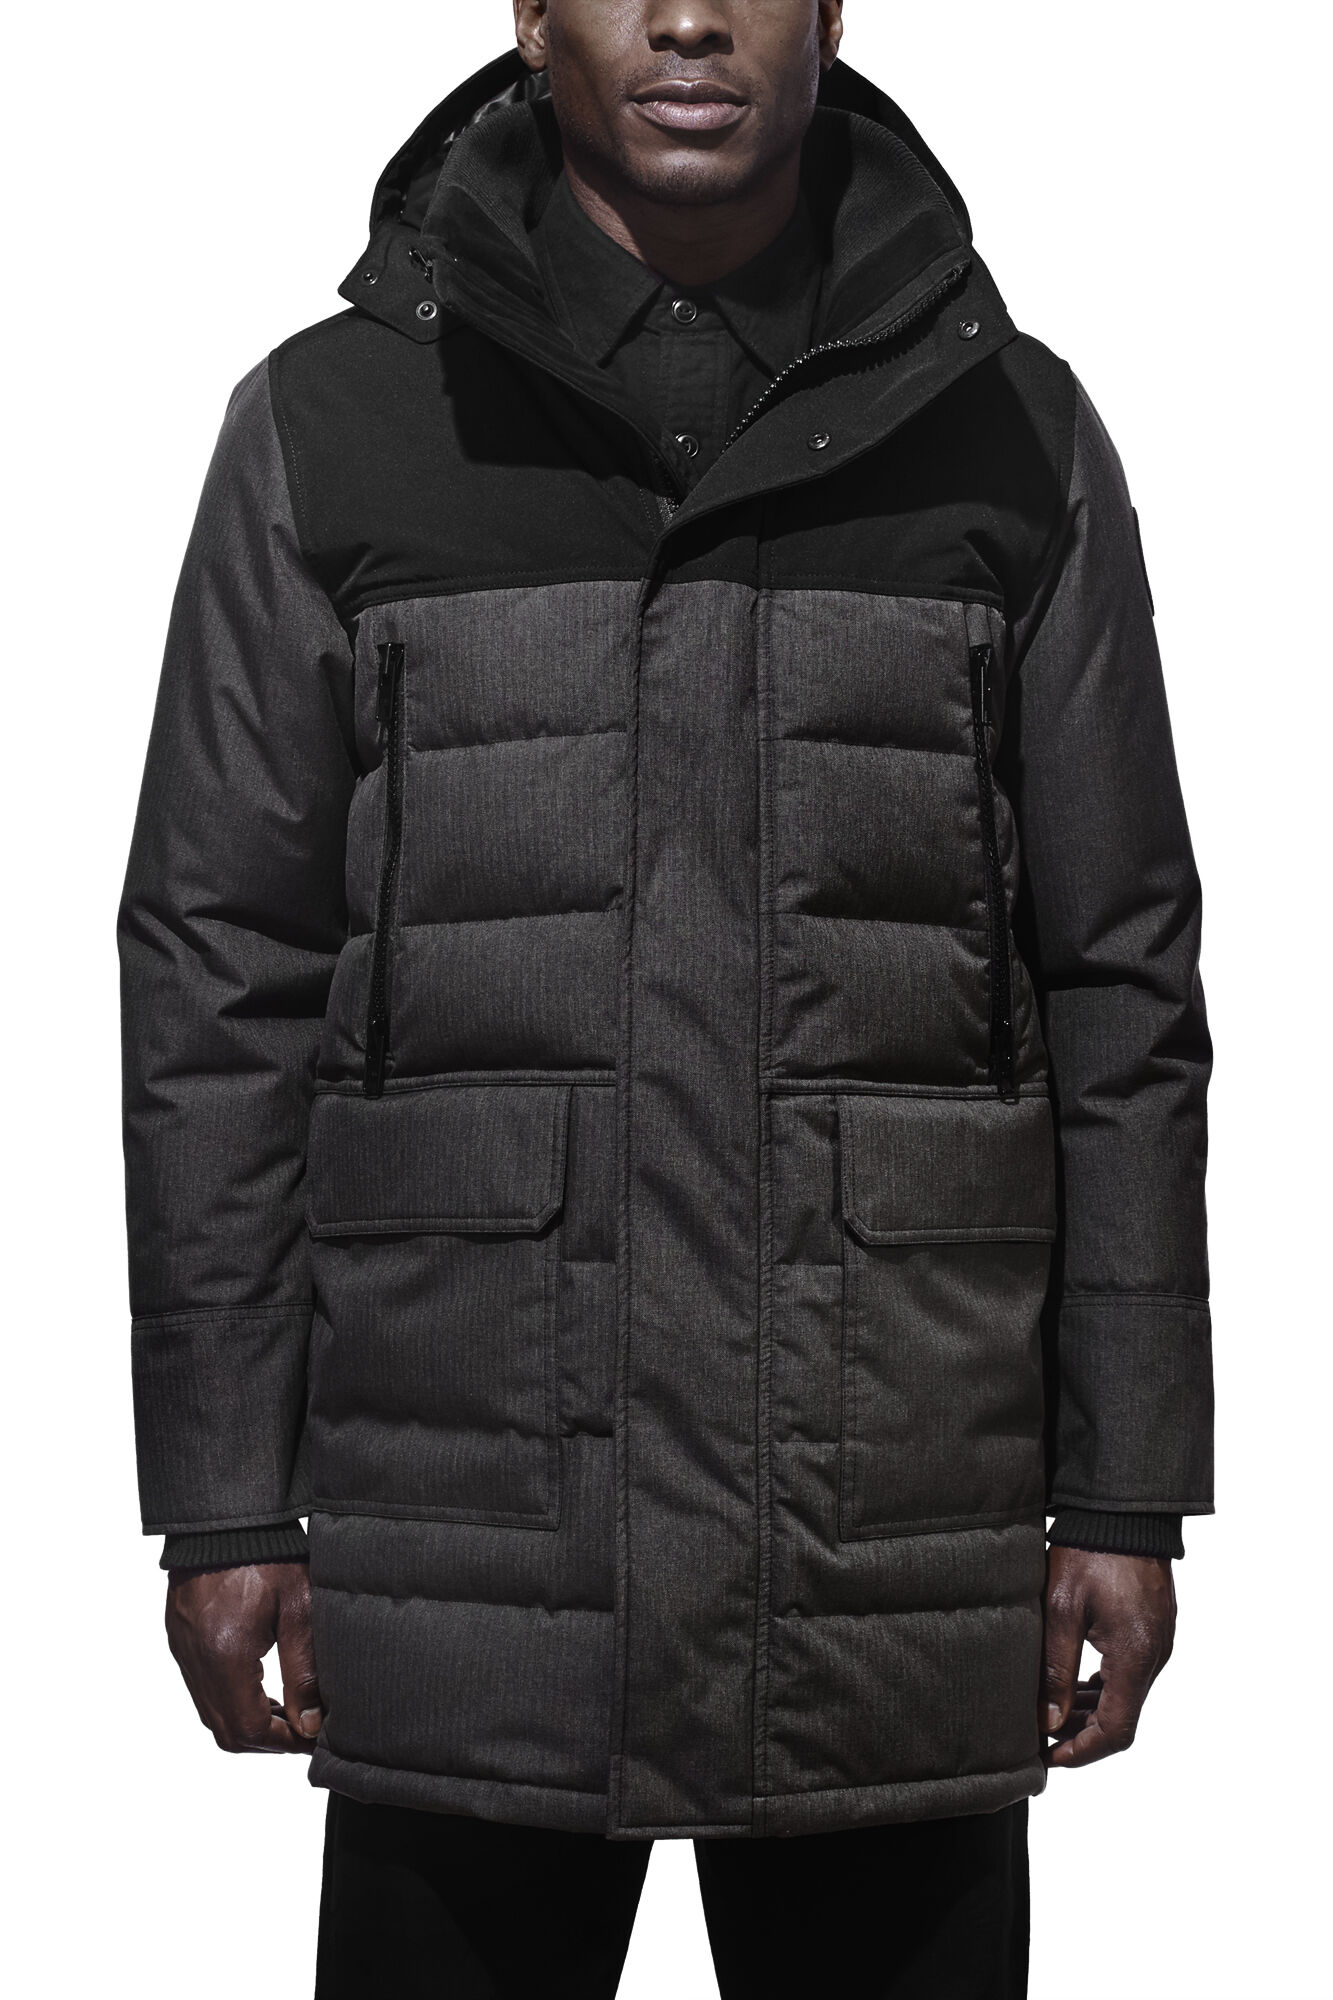 Greenland parka light herren